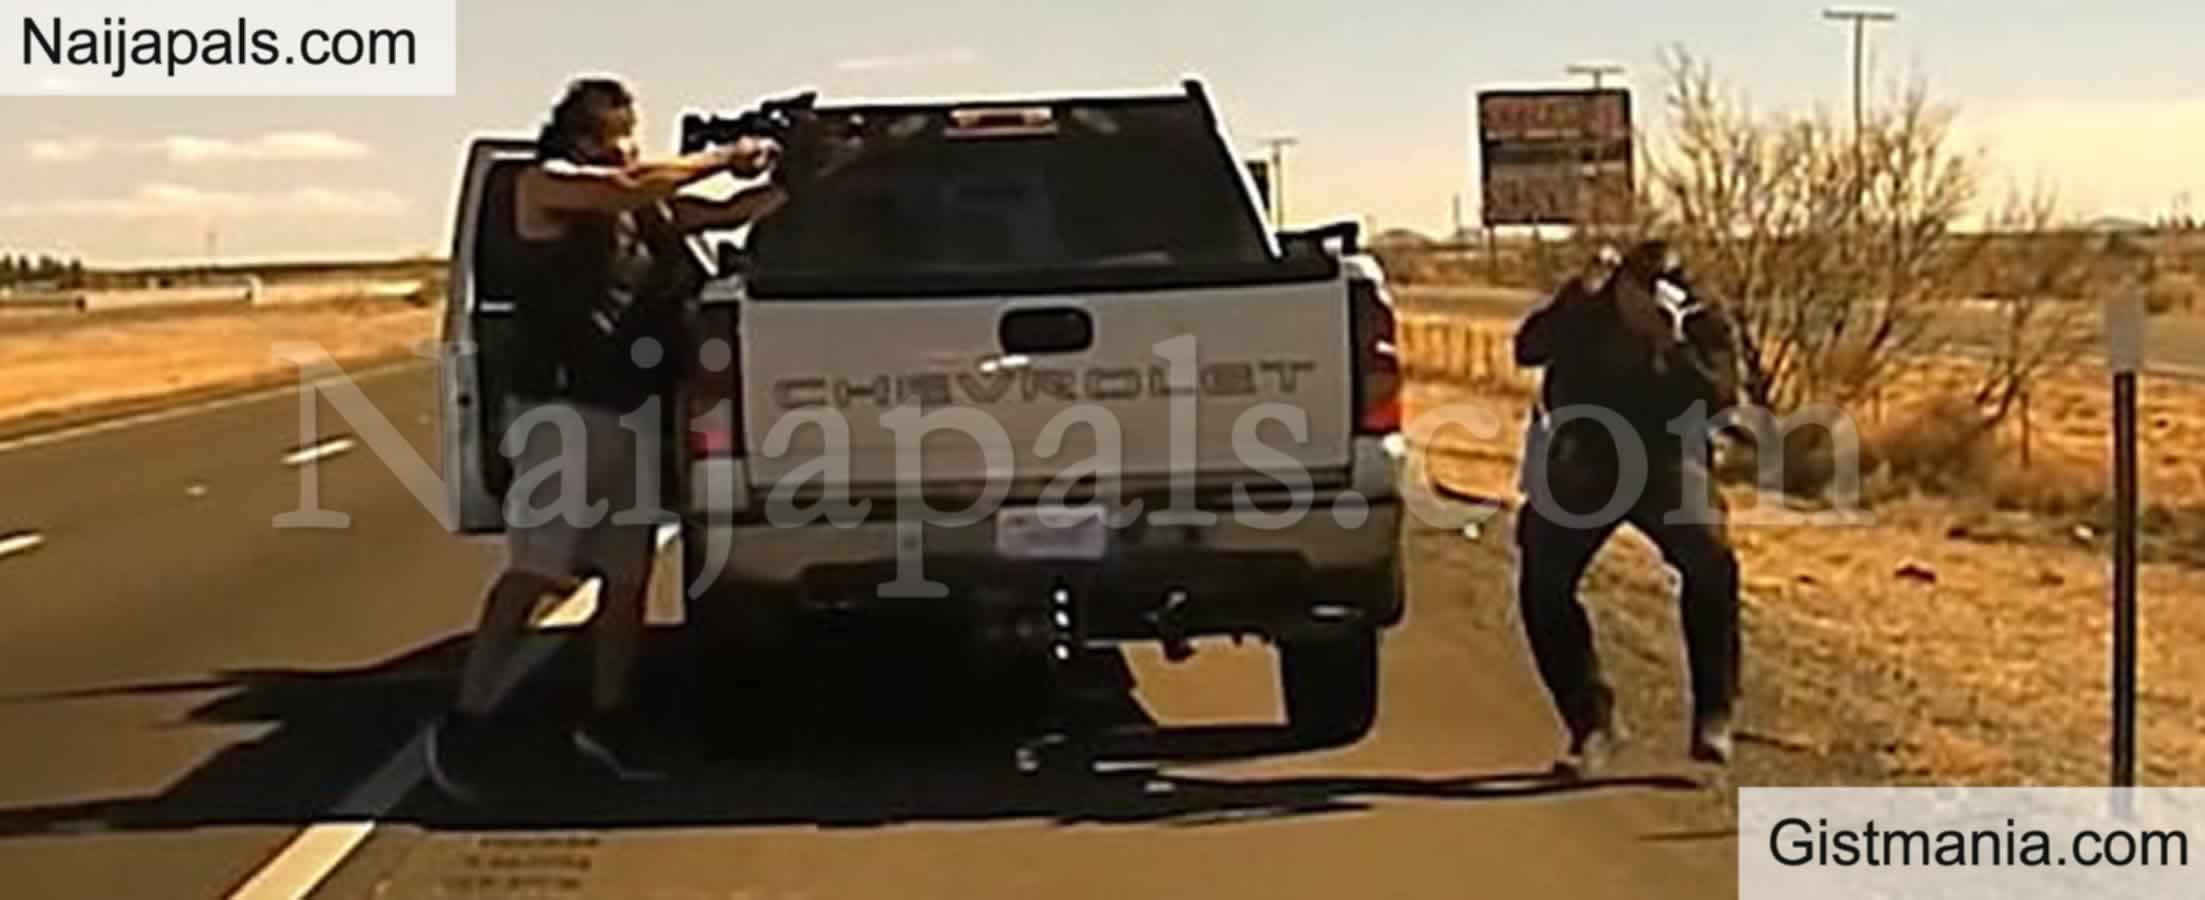 <img alt='.' class='lazyload' data-src='https://img.gistmania.com/emot/shocked.gif' /> Shocking <b>Video Of Drug Dealer Executing US Police Officer During Traffic Stop In Broad Daylight</b>